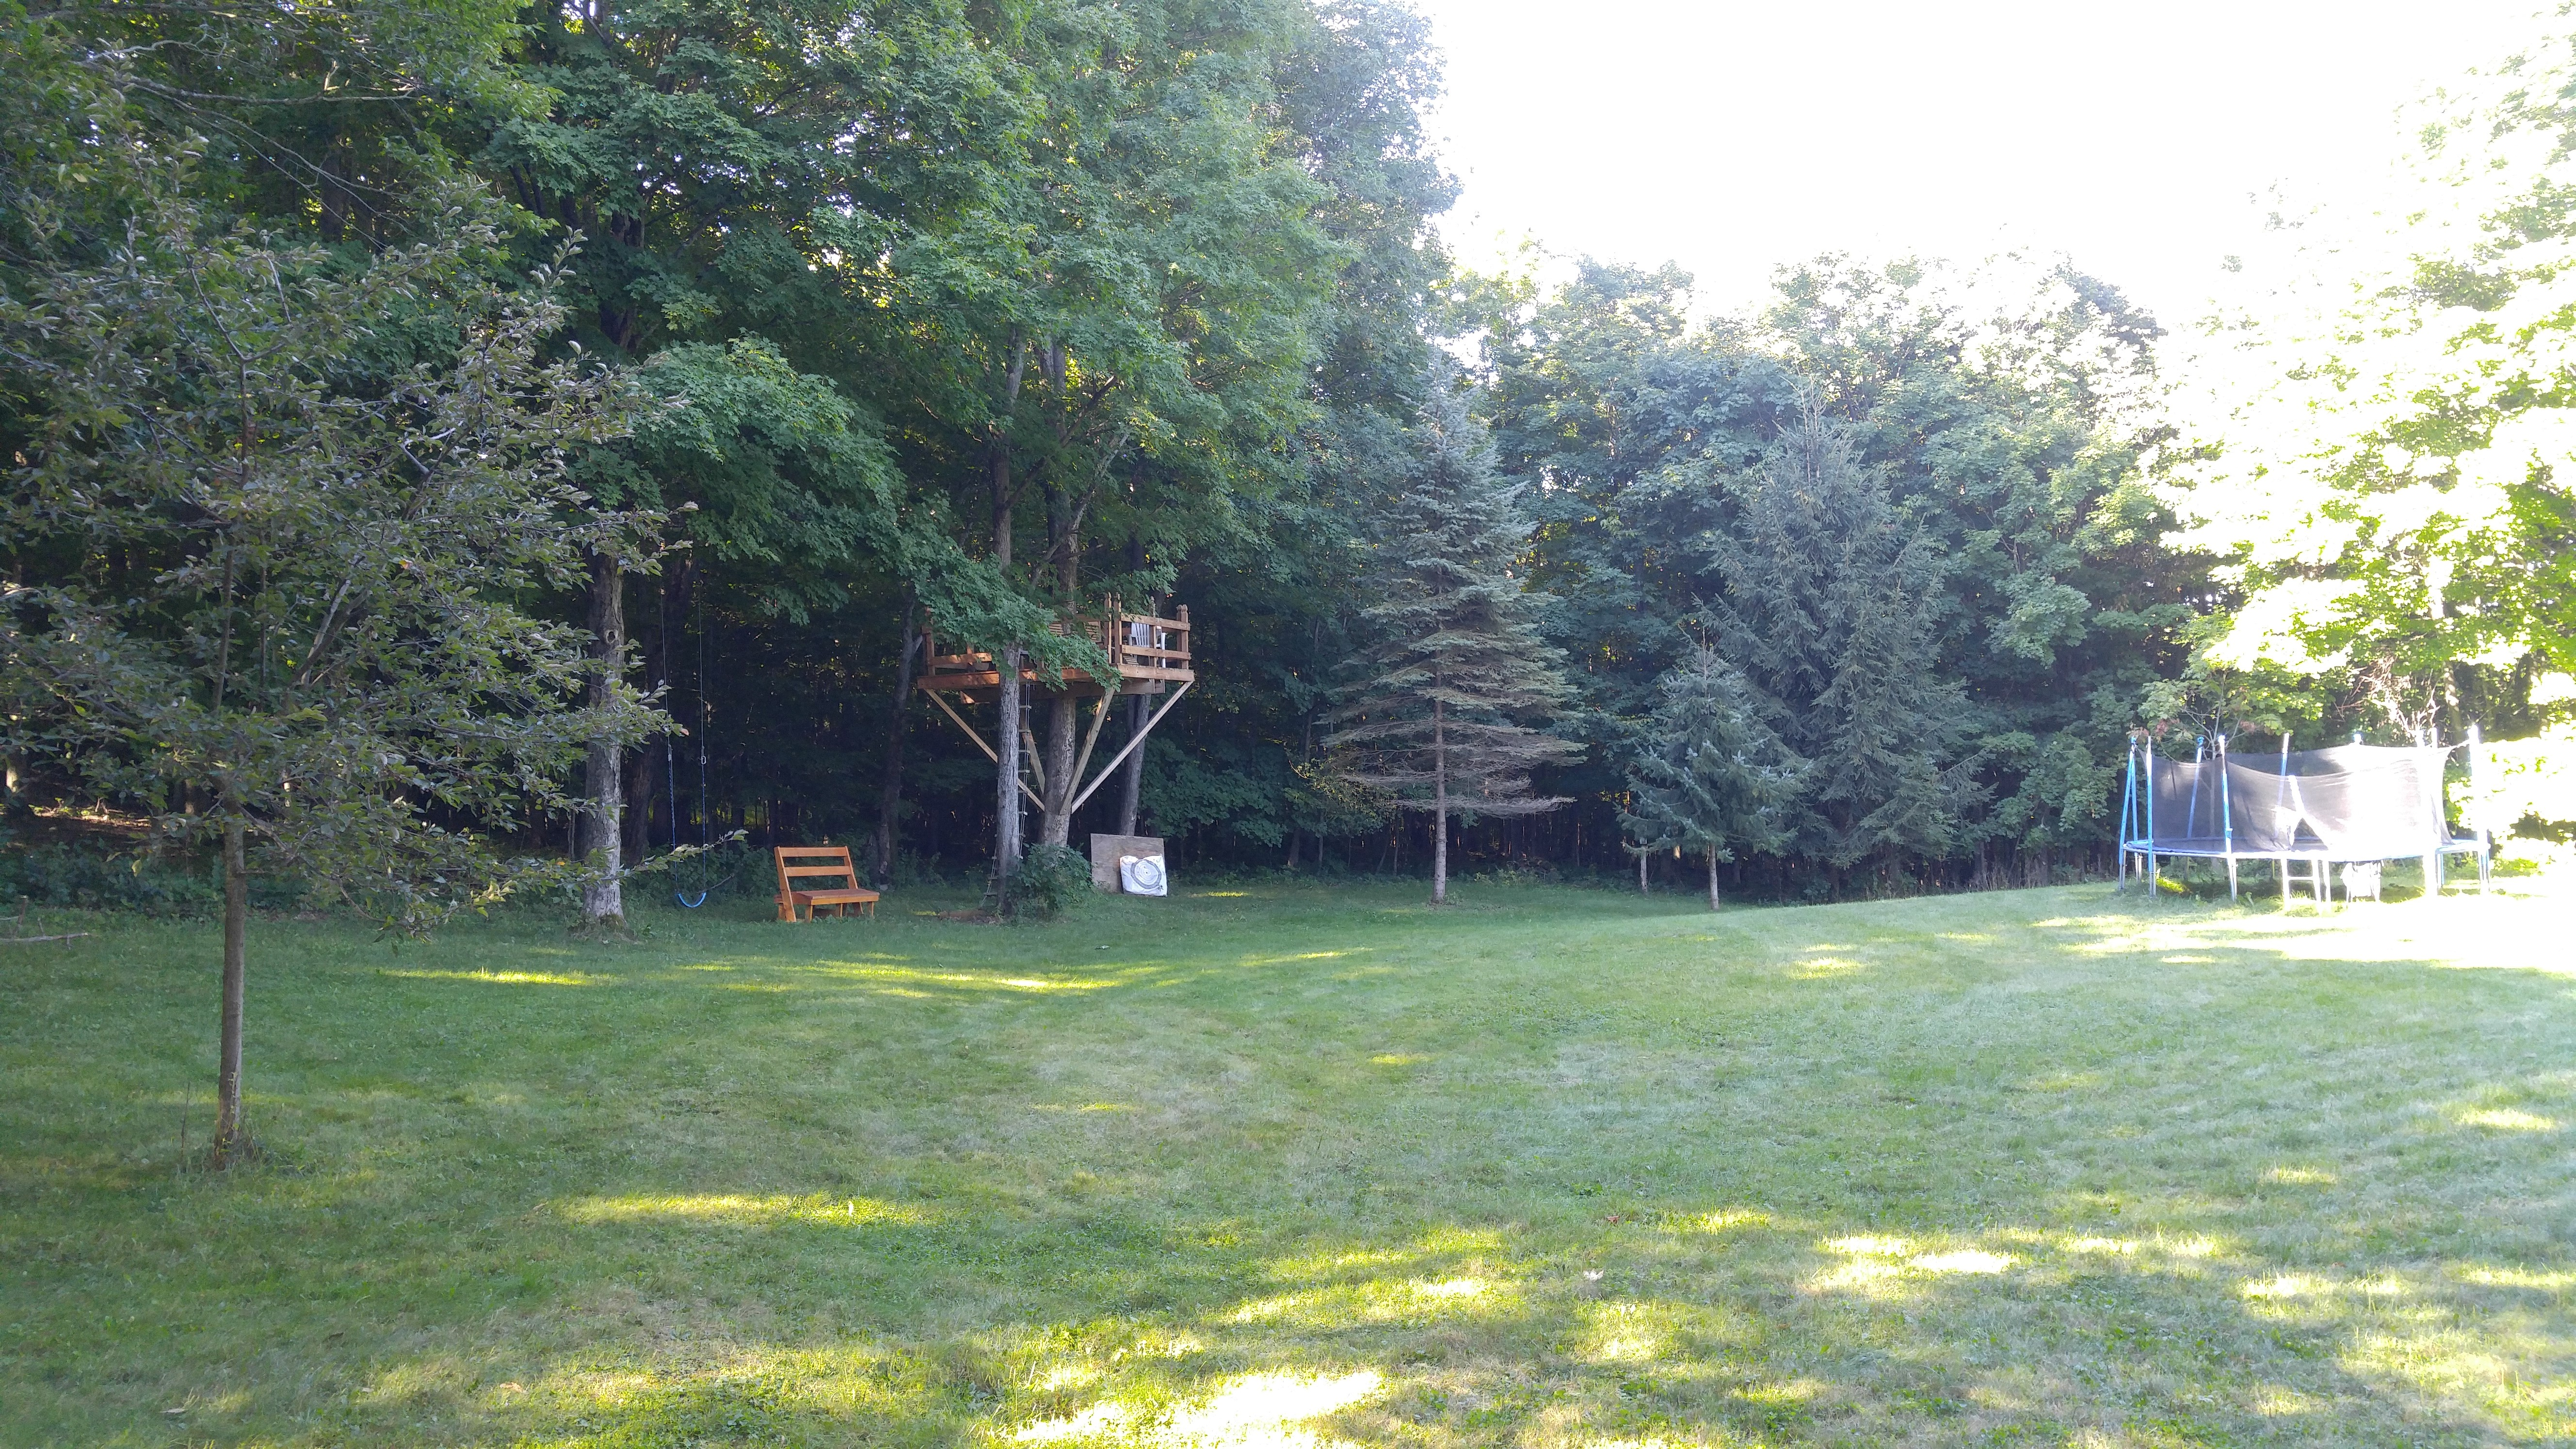 THE RESIDENCE - BACKYARD - TREE HOUSE AND TRAMPOLINE